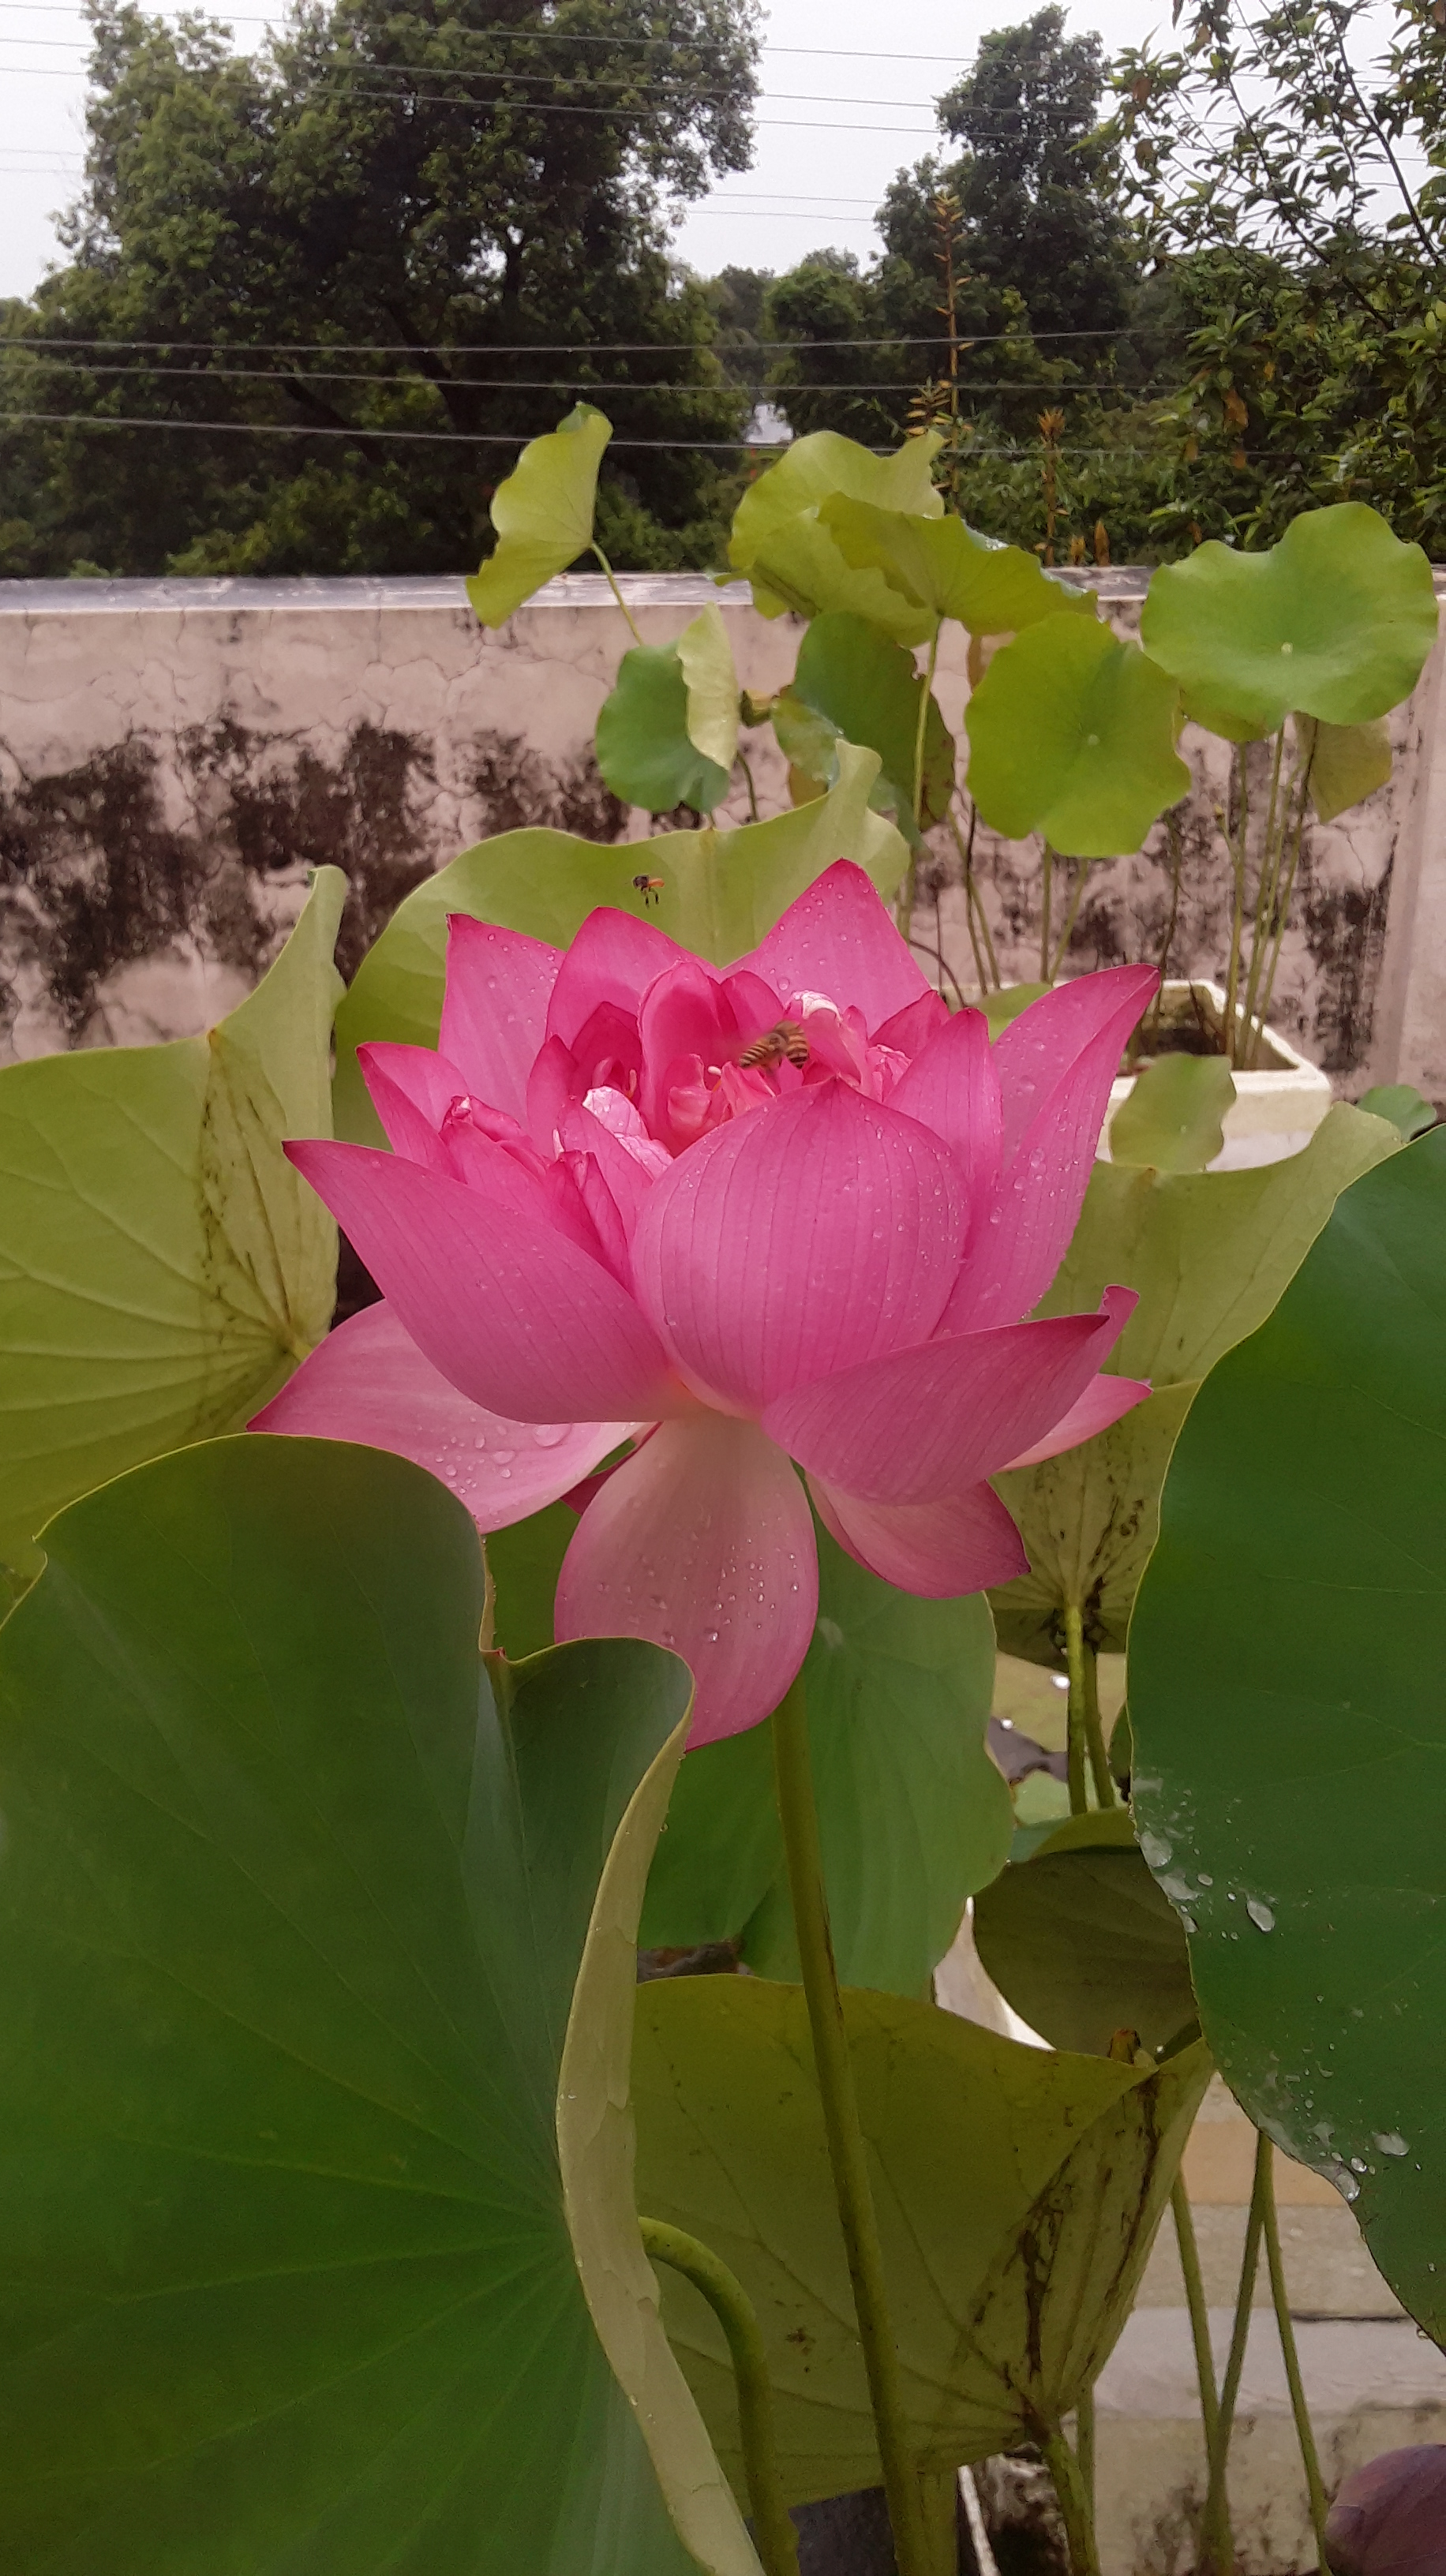 How One Man In India Is Bringing The Beauty Of The Lotus Flower To